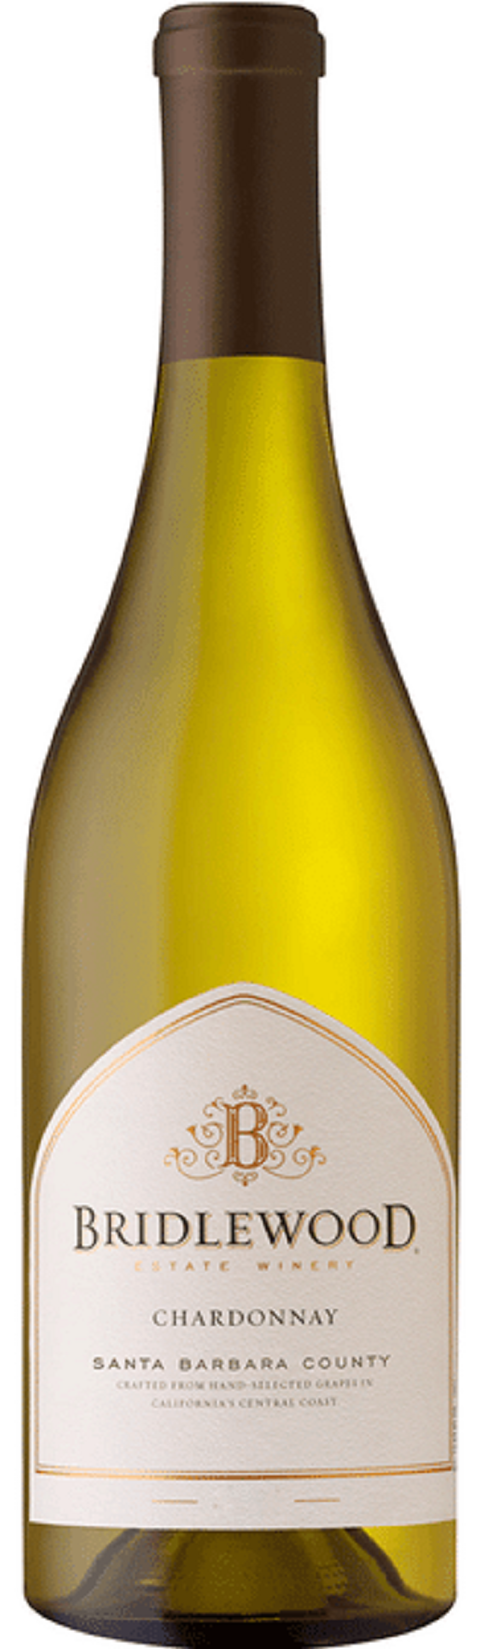 Bridlewood Estate Chardonnay 2018